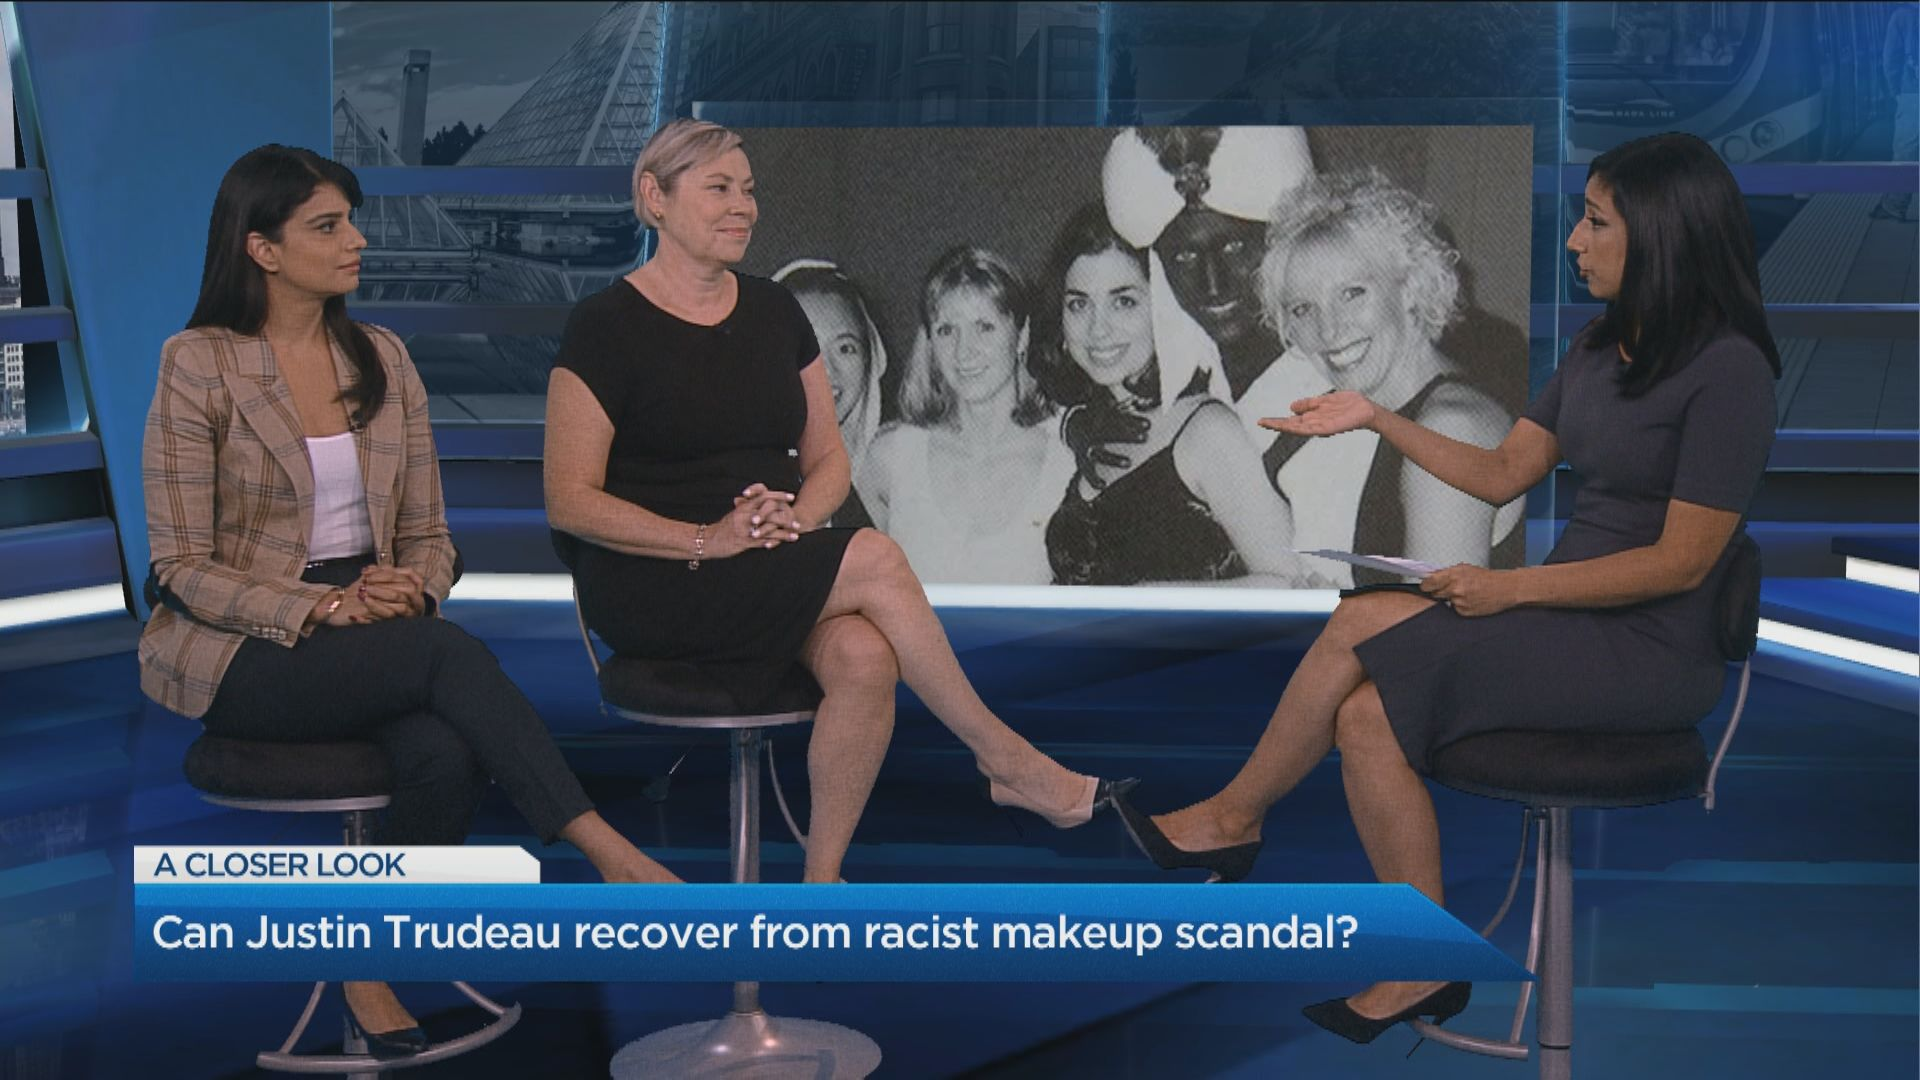 Can Justin Trudeau recover from racist makeup scandal?